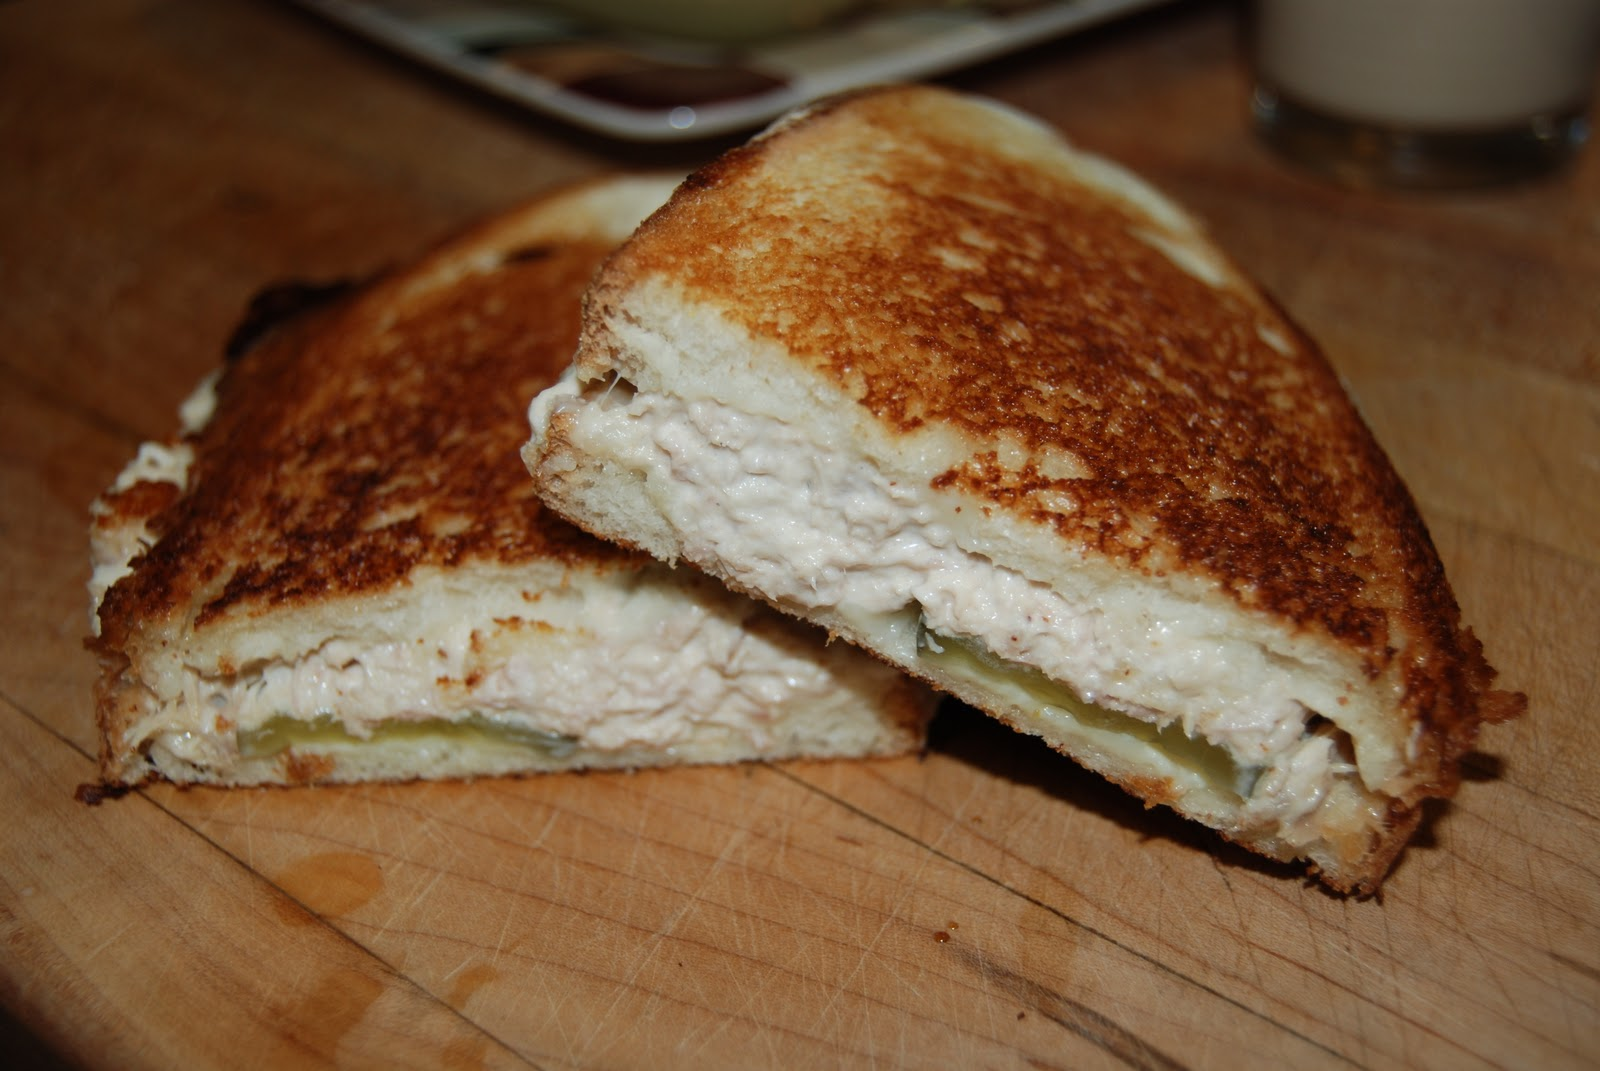 Eat My Asparagus The Toasted Cheese Sandwich Gourmet Or Not You